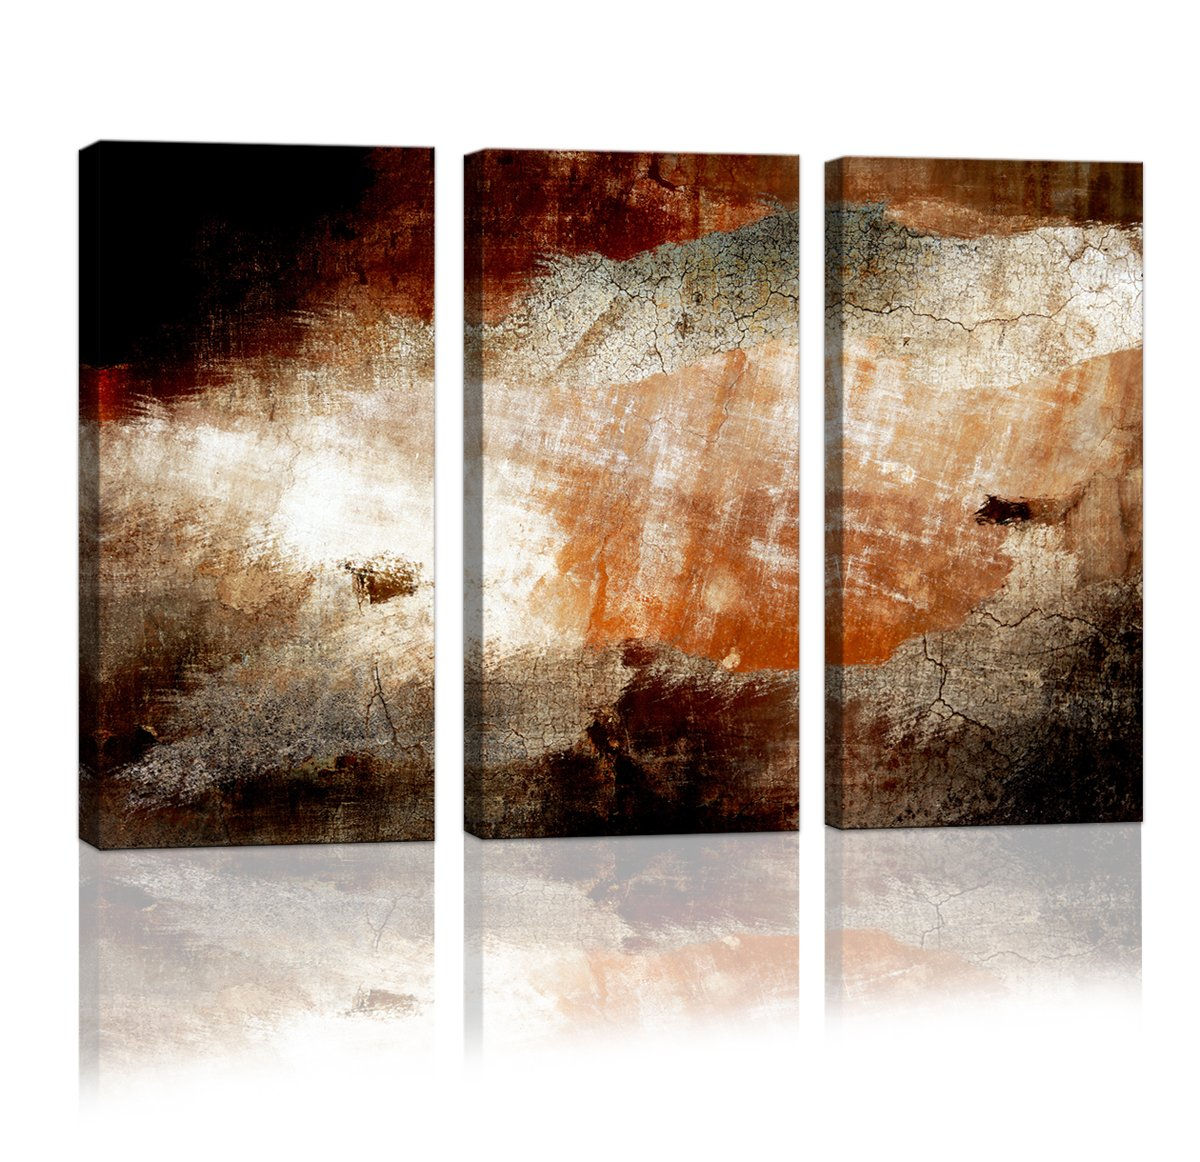 Cao Gen Decor Art-A01535 3 panels Framed Wall Art Abstract Print Painting on Canvas for Home Decor by Cao Gen Decor Art